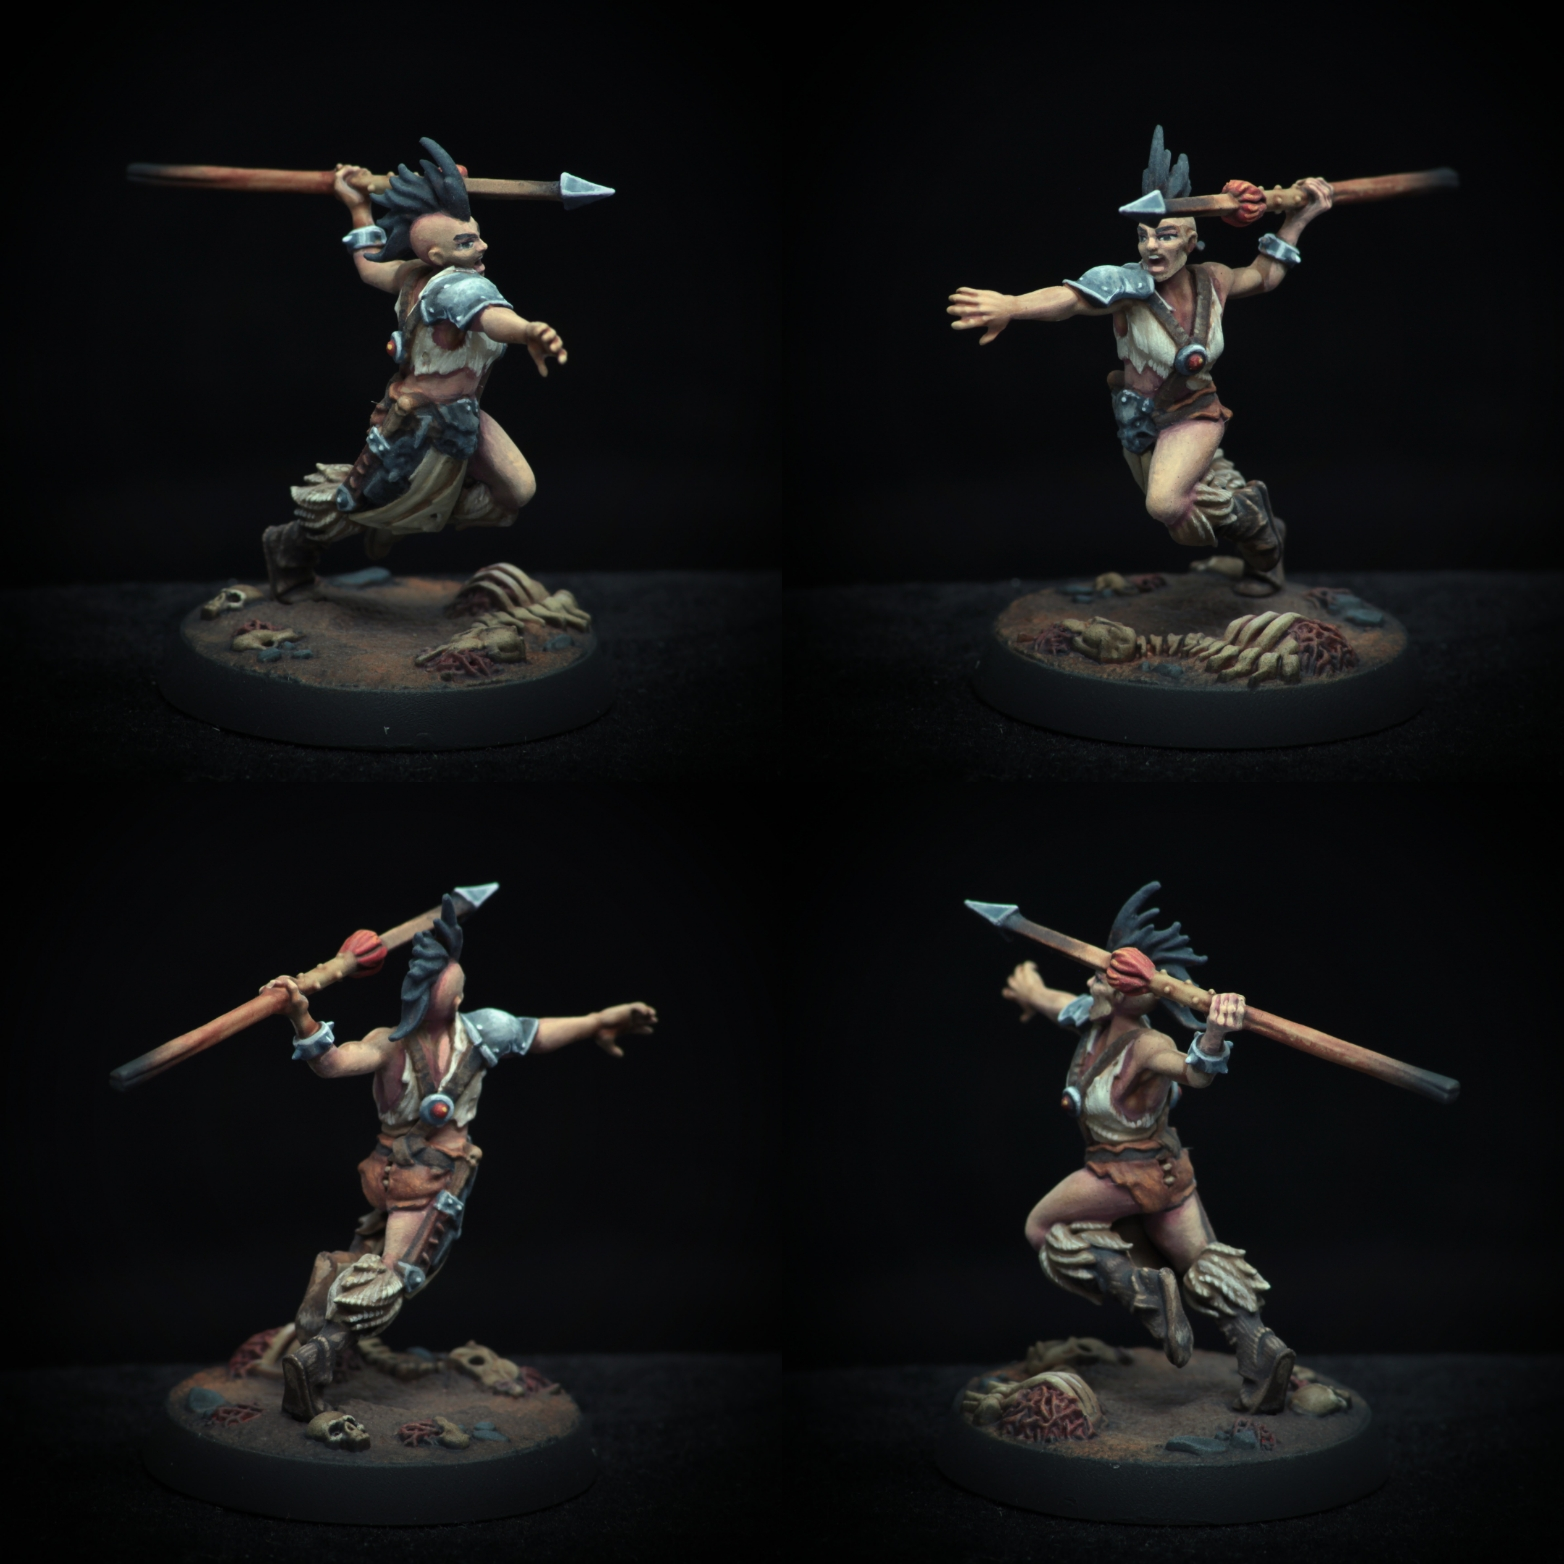 Barbarian with spear